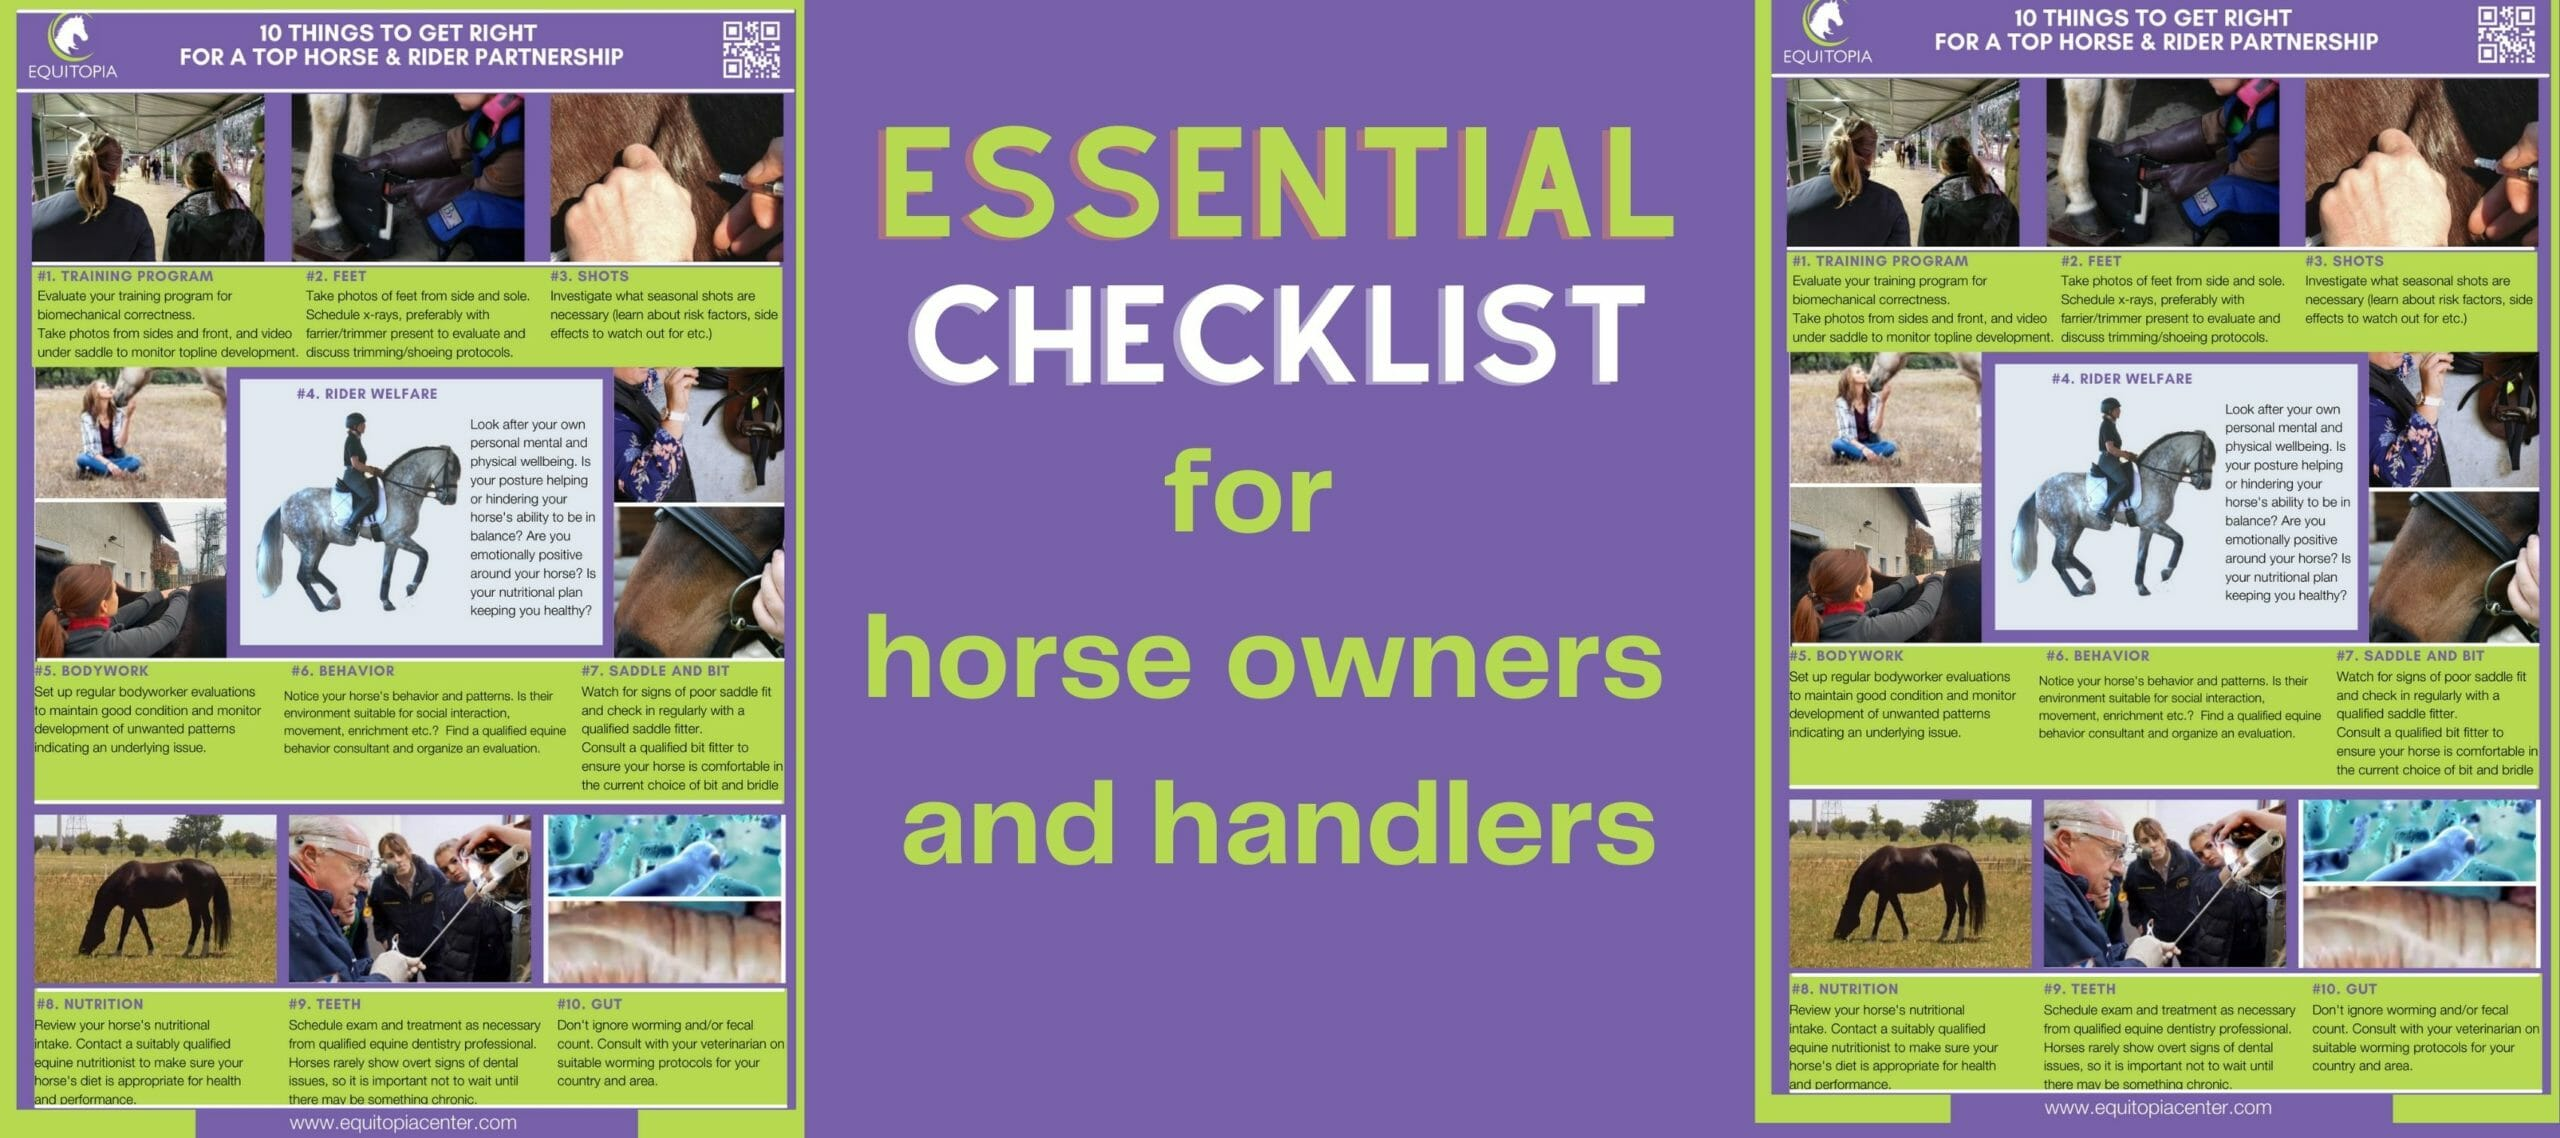 Essential checklist for horse owners